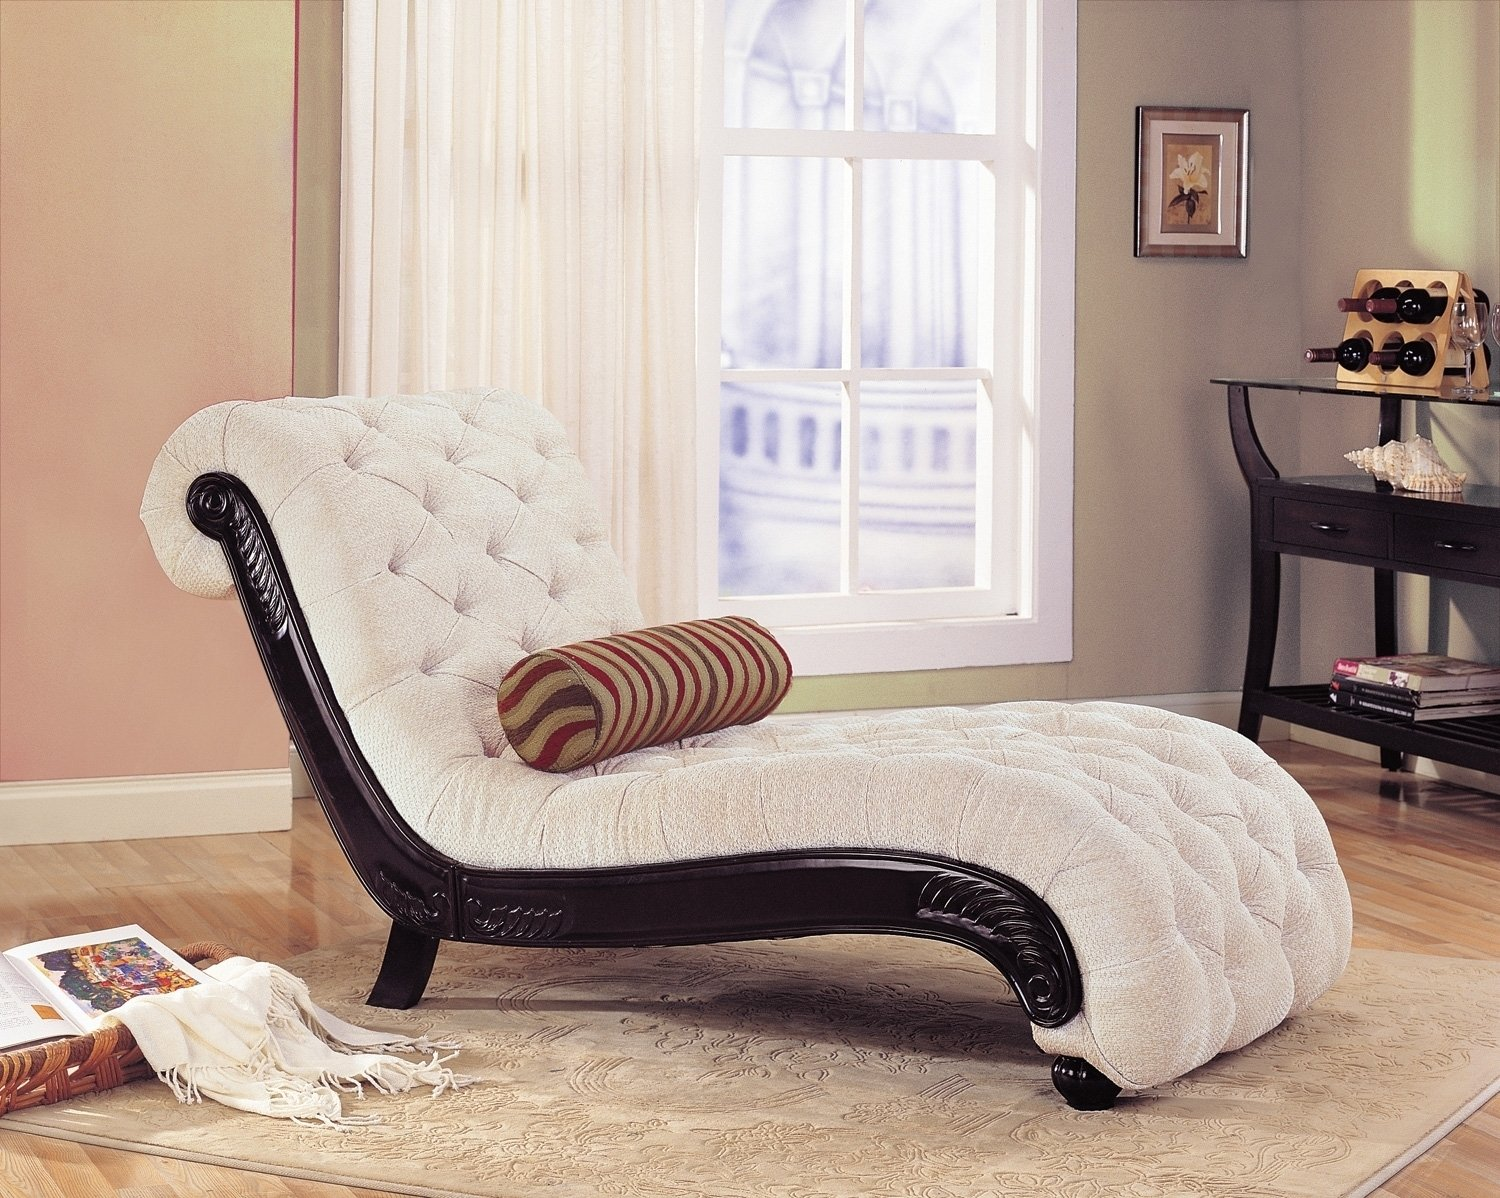 Lounge Chairs For Bedroom Bentley Small Also Comfortable .